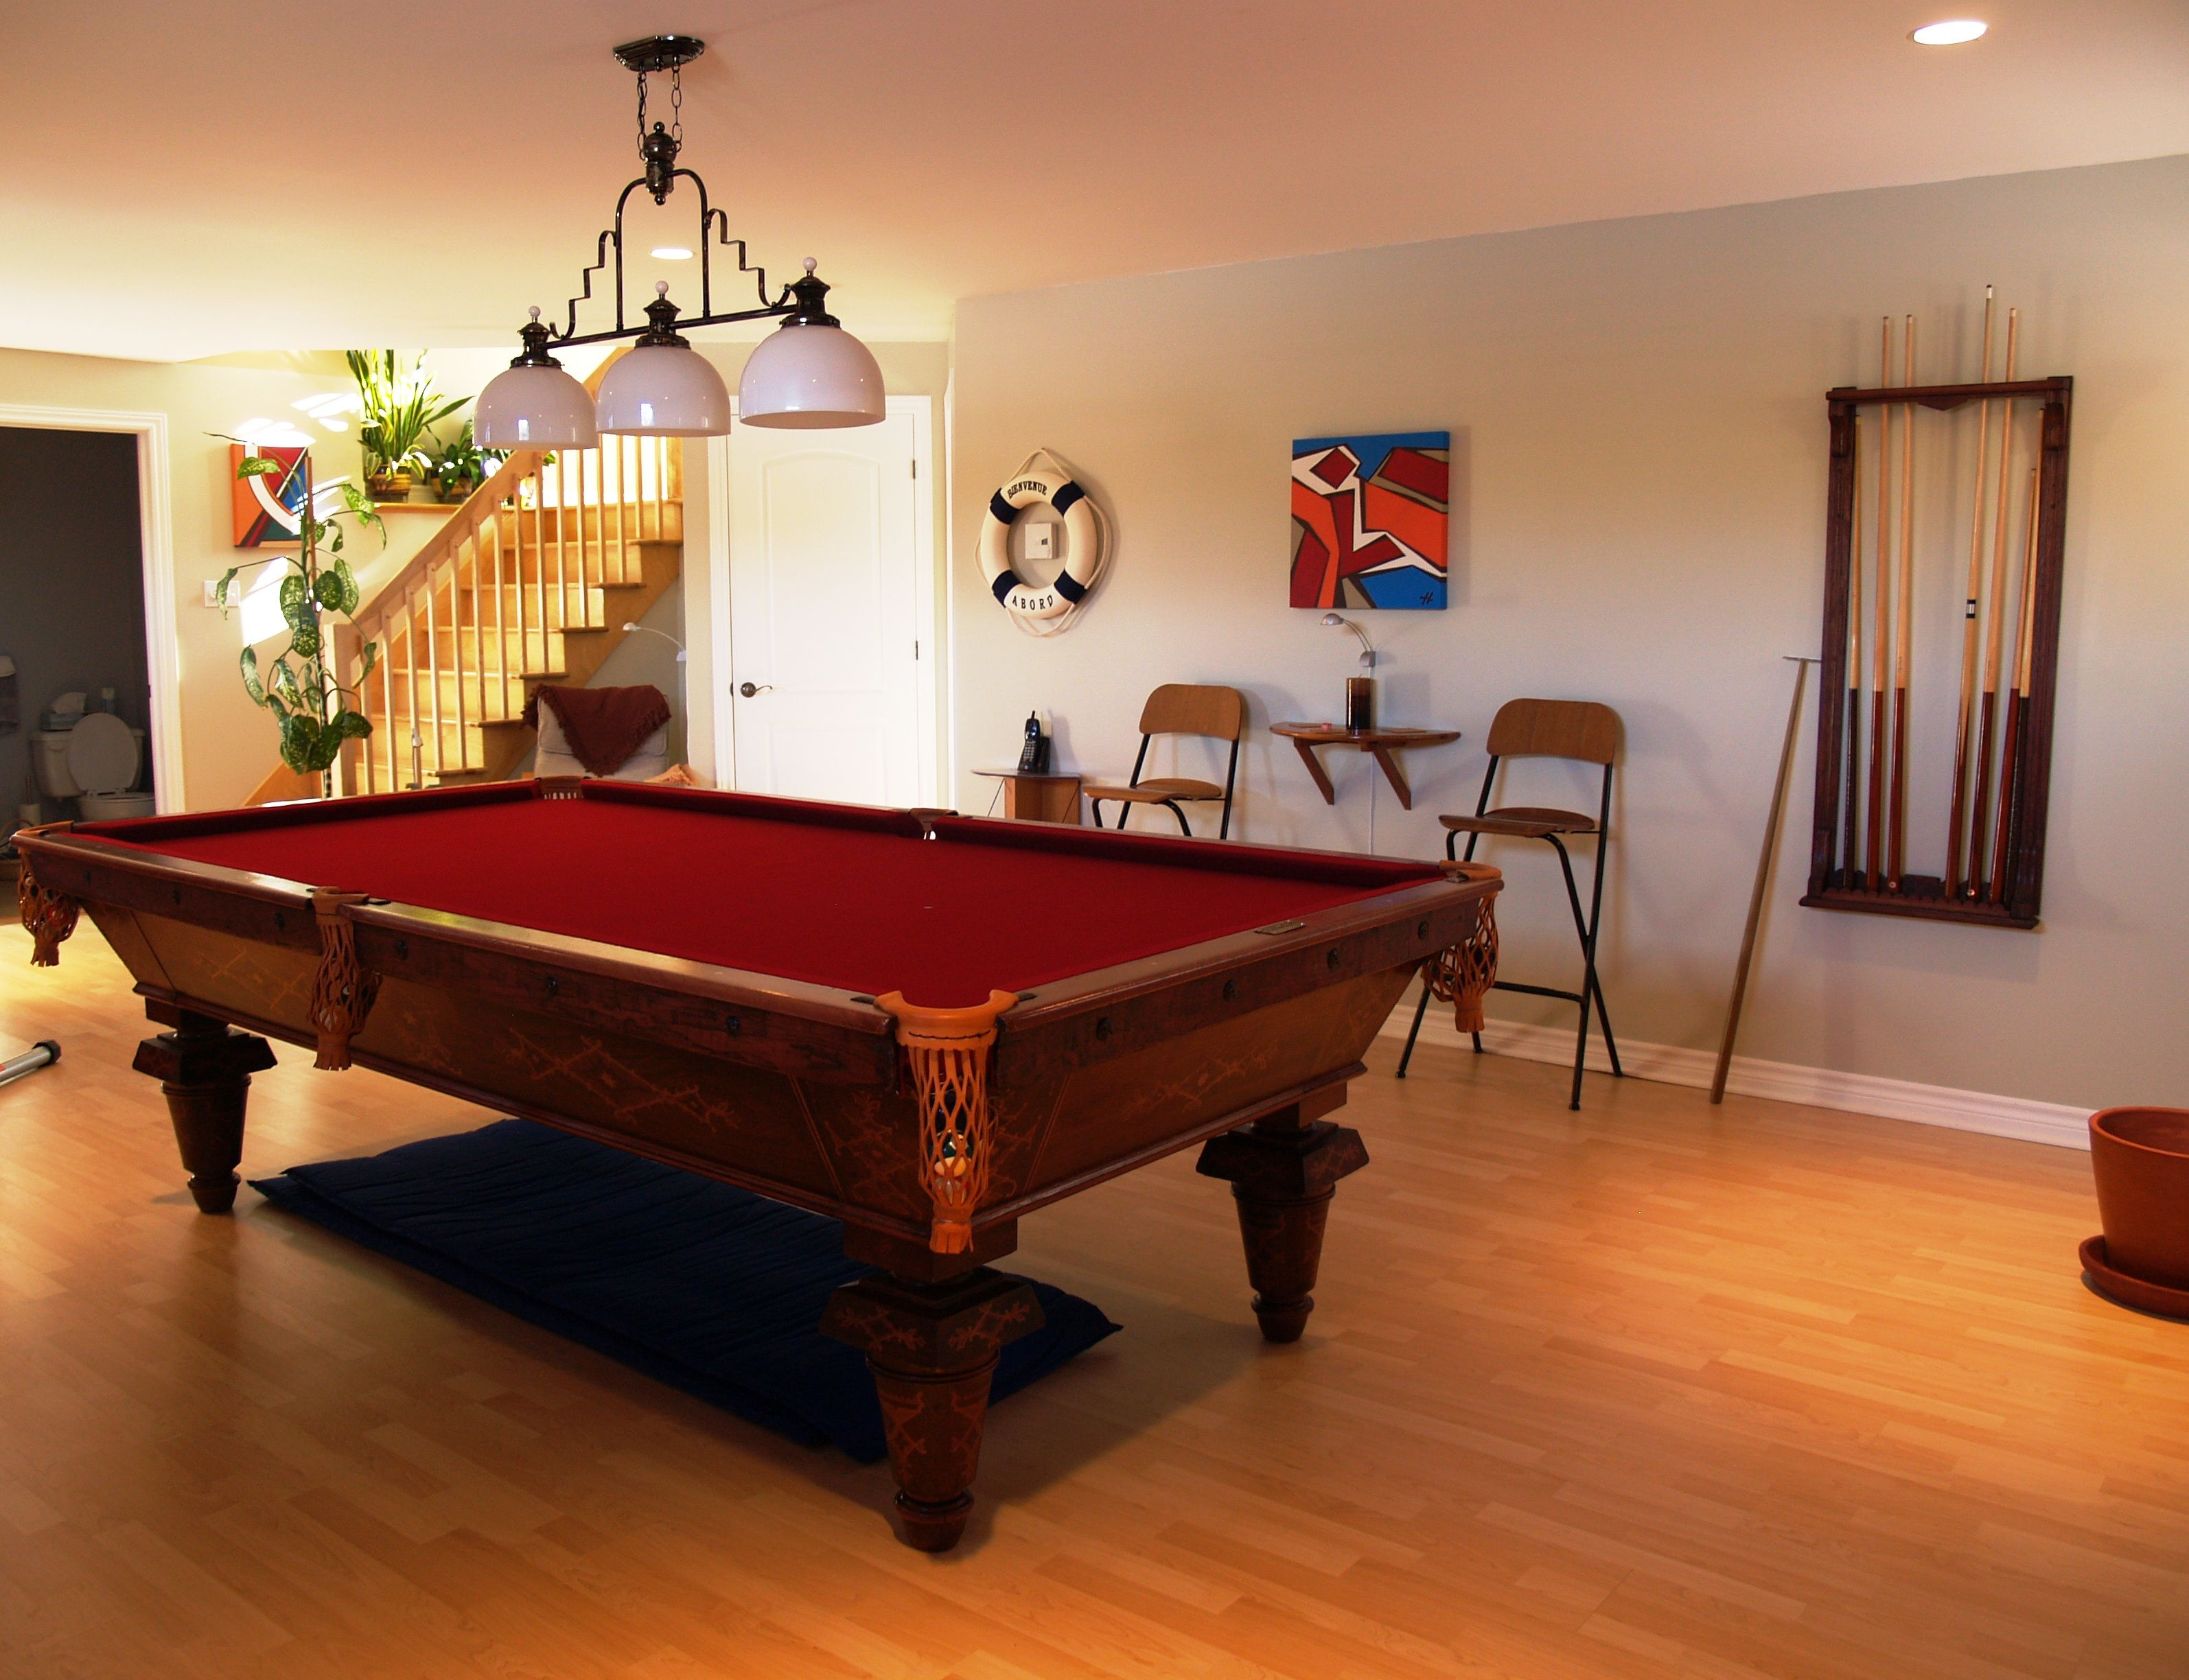 Beautiful Billiard Room With A 1940 Brunswick Pool Table